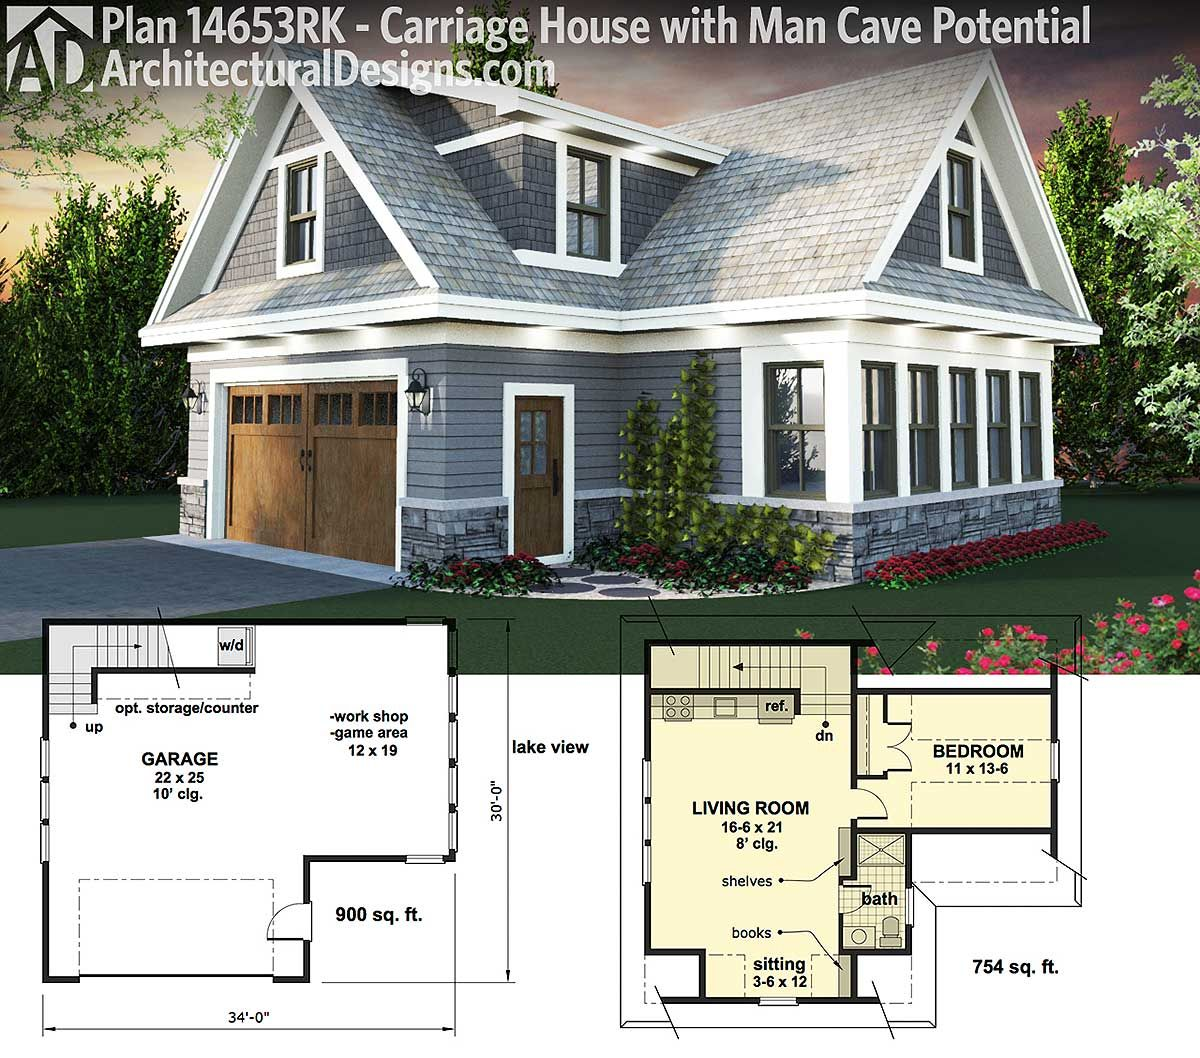 Home Garage Design Ideas: Plan 14653RK: Carriage House Plan With Man Cave Potential